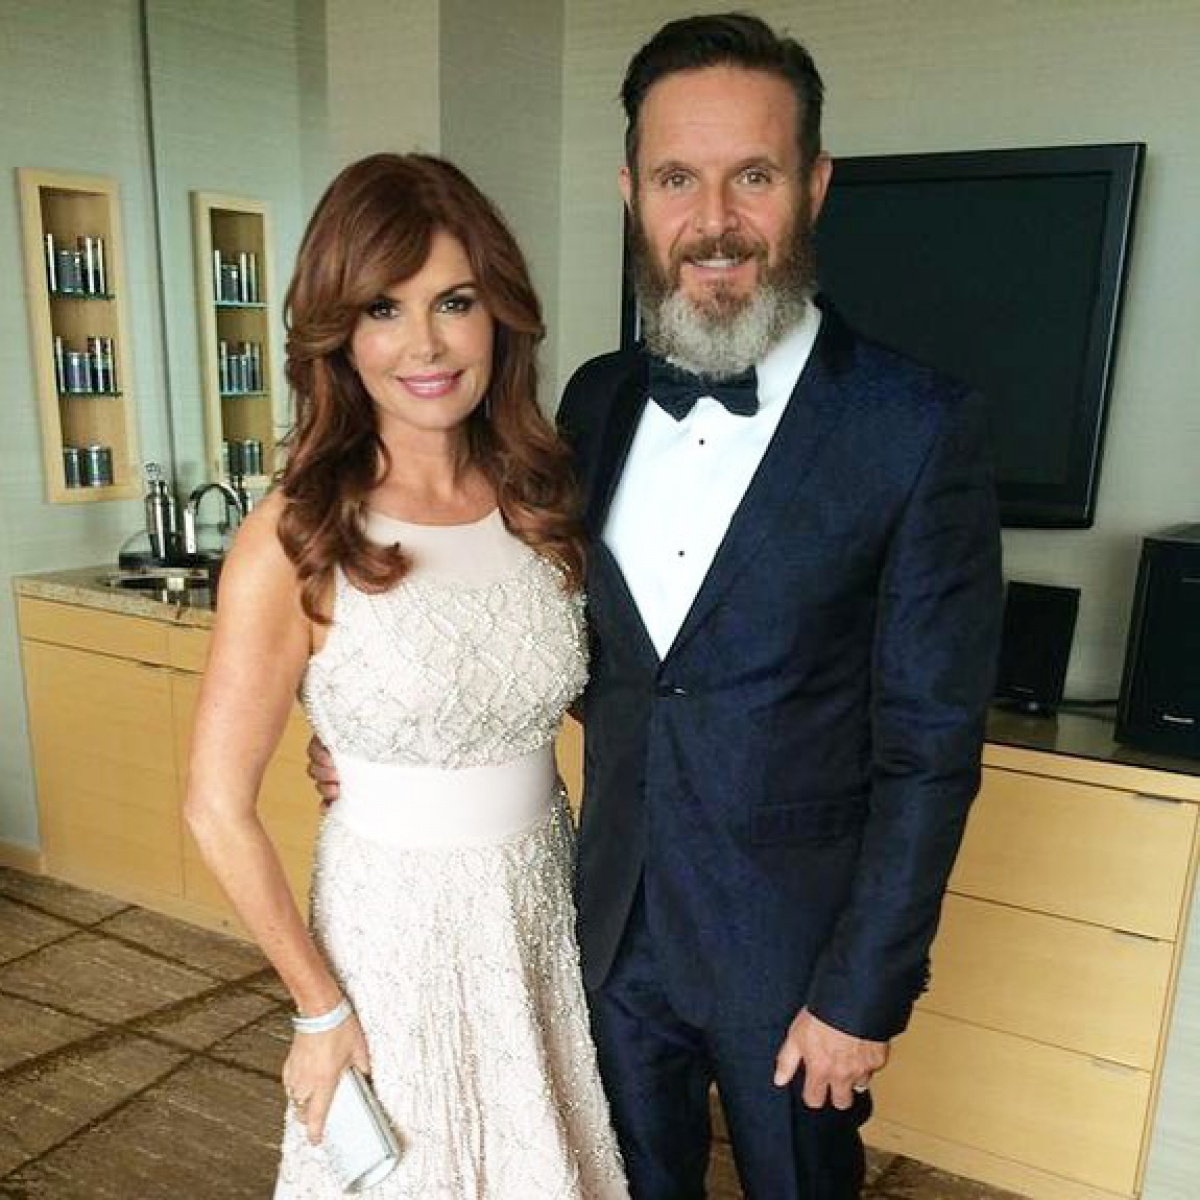 Big Brother Global Roma Downey Thanks God After Husband Mark